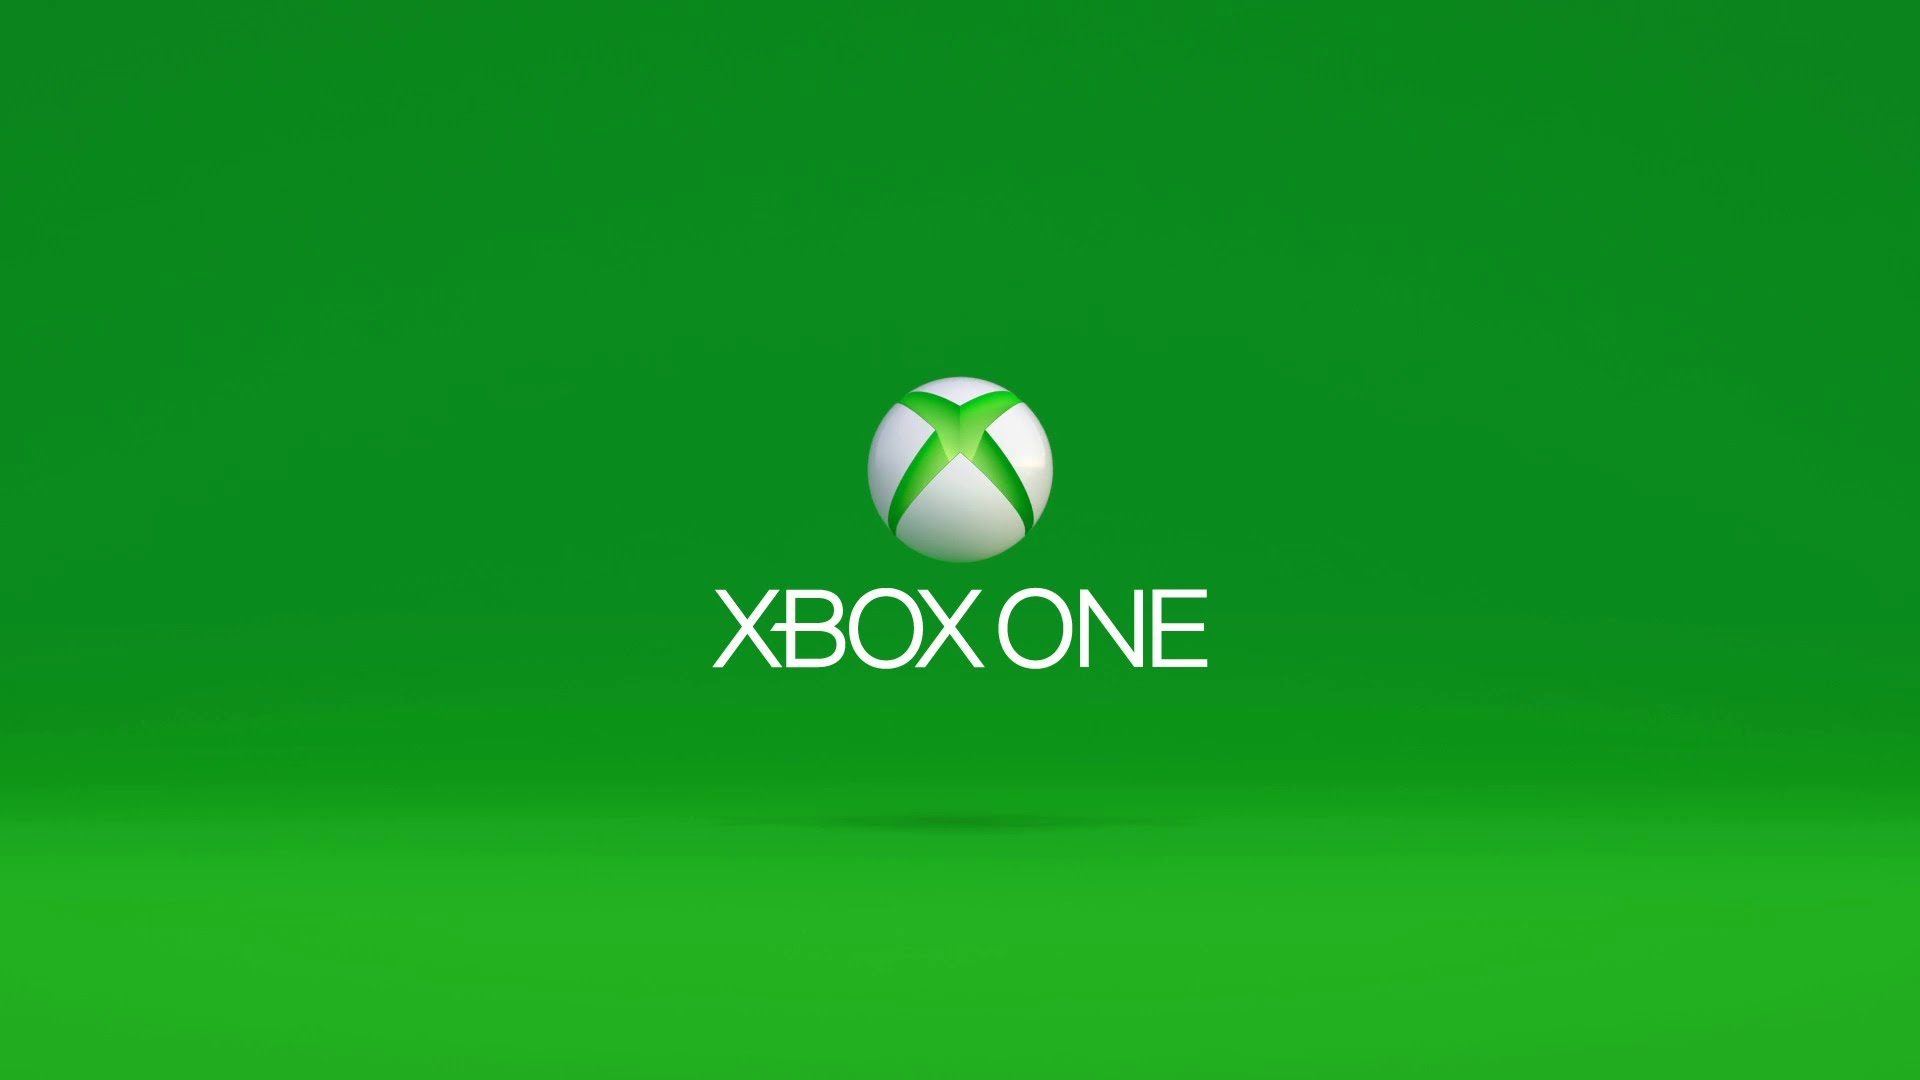 Xbox One Wallpapers: 1080P Wallpapers For Xbox One